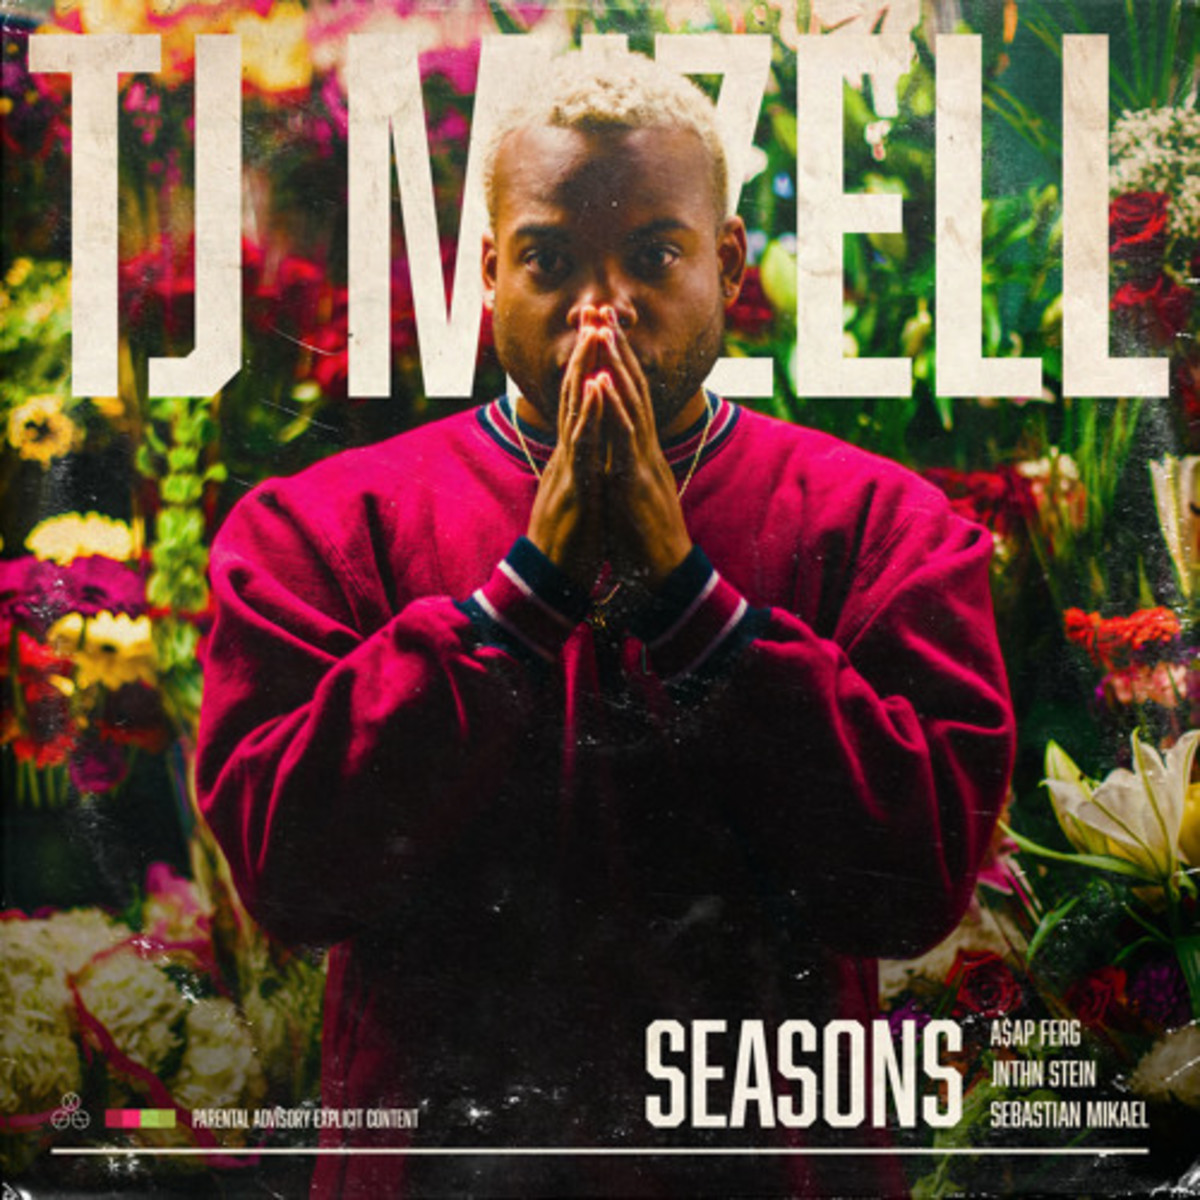 tj-mizell-seasons.jpg